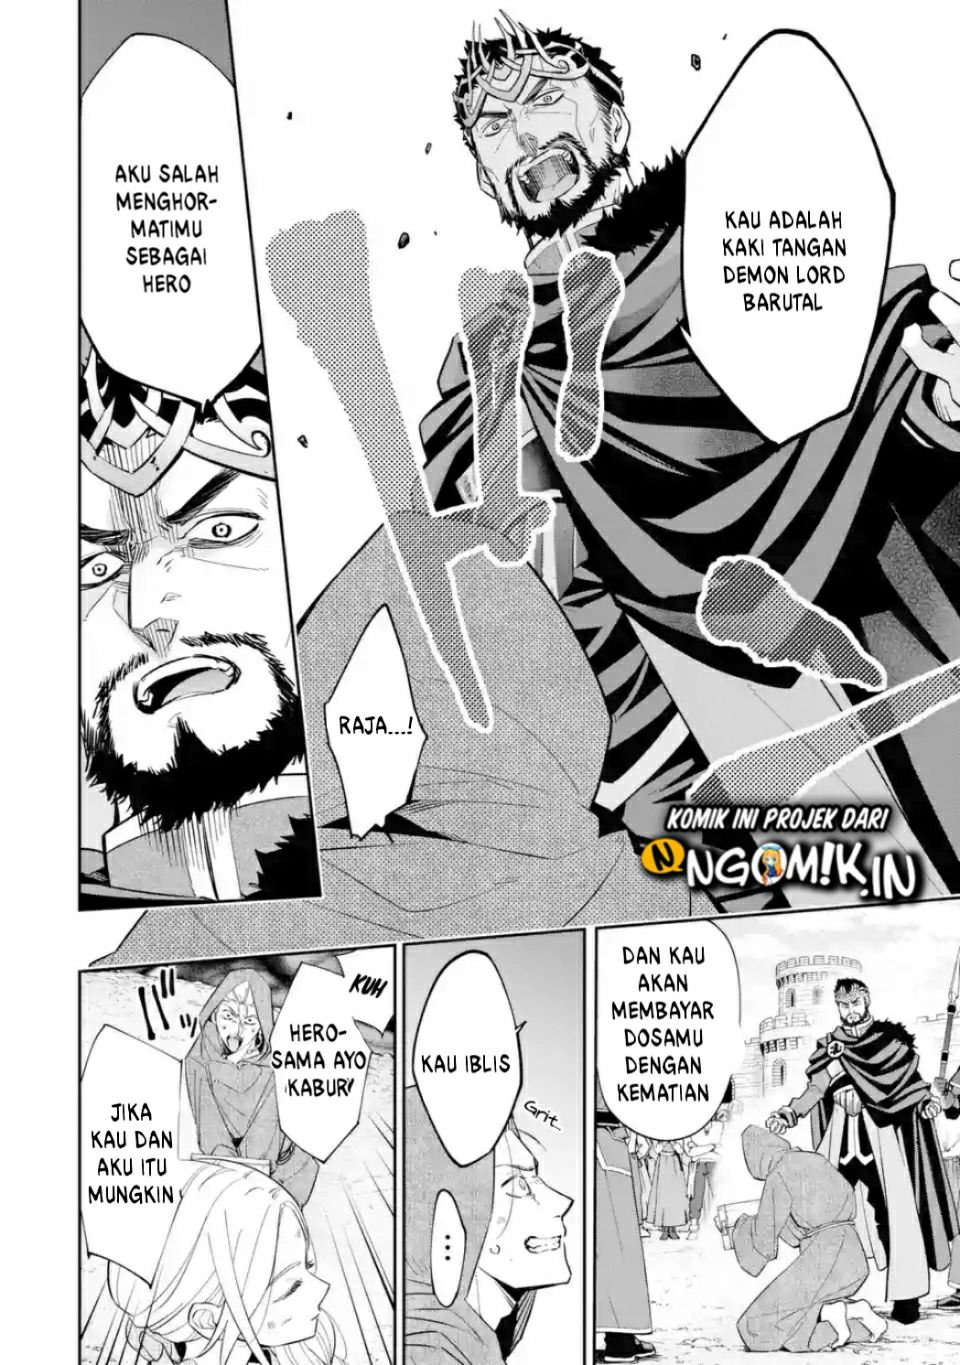 Spoiler Manga The Executed Sage is Reincarnated as a Lich and Starts an All-Out War 4